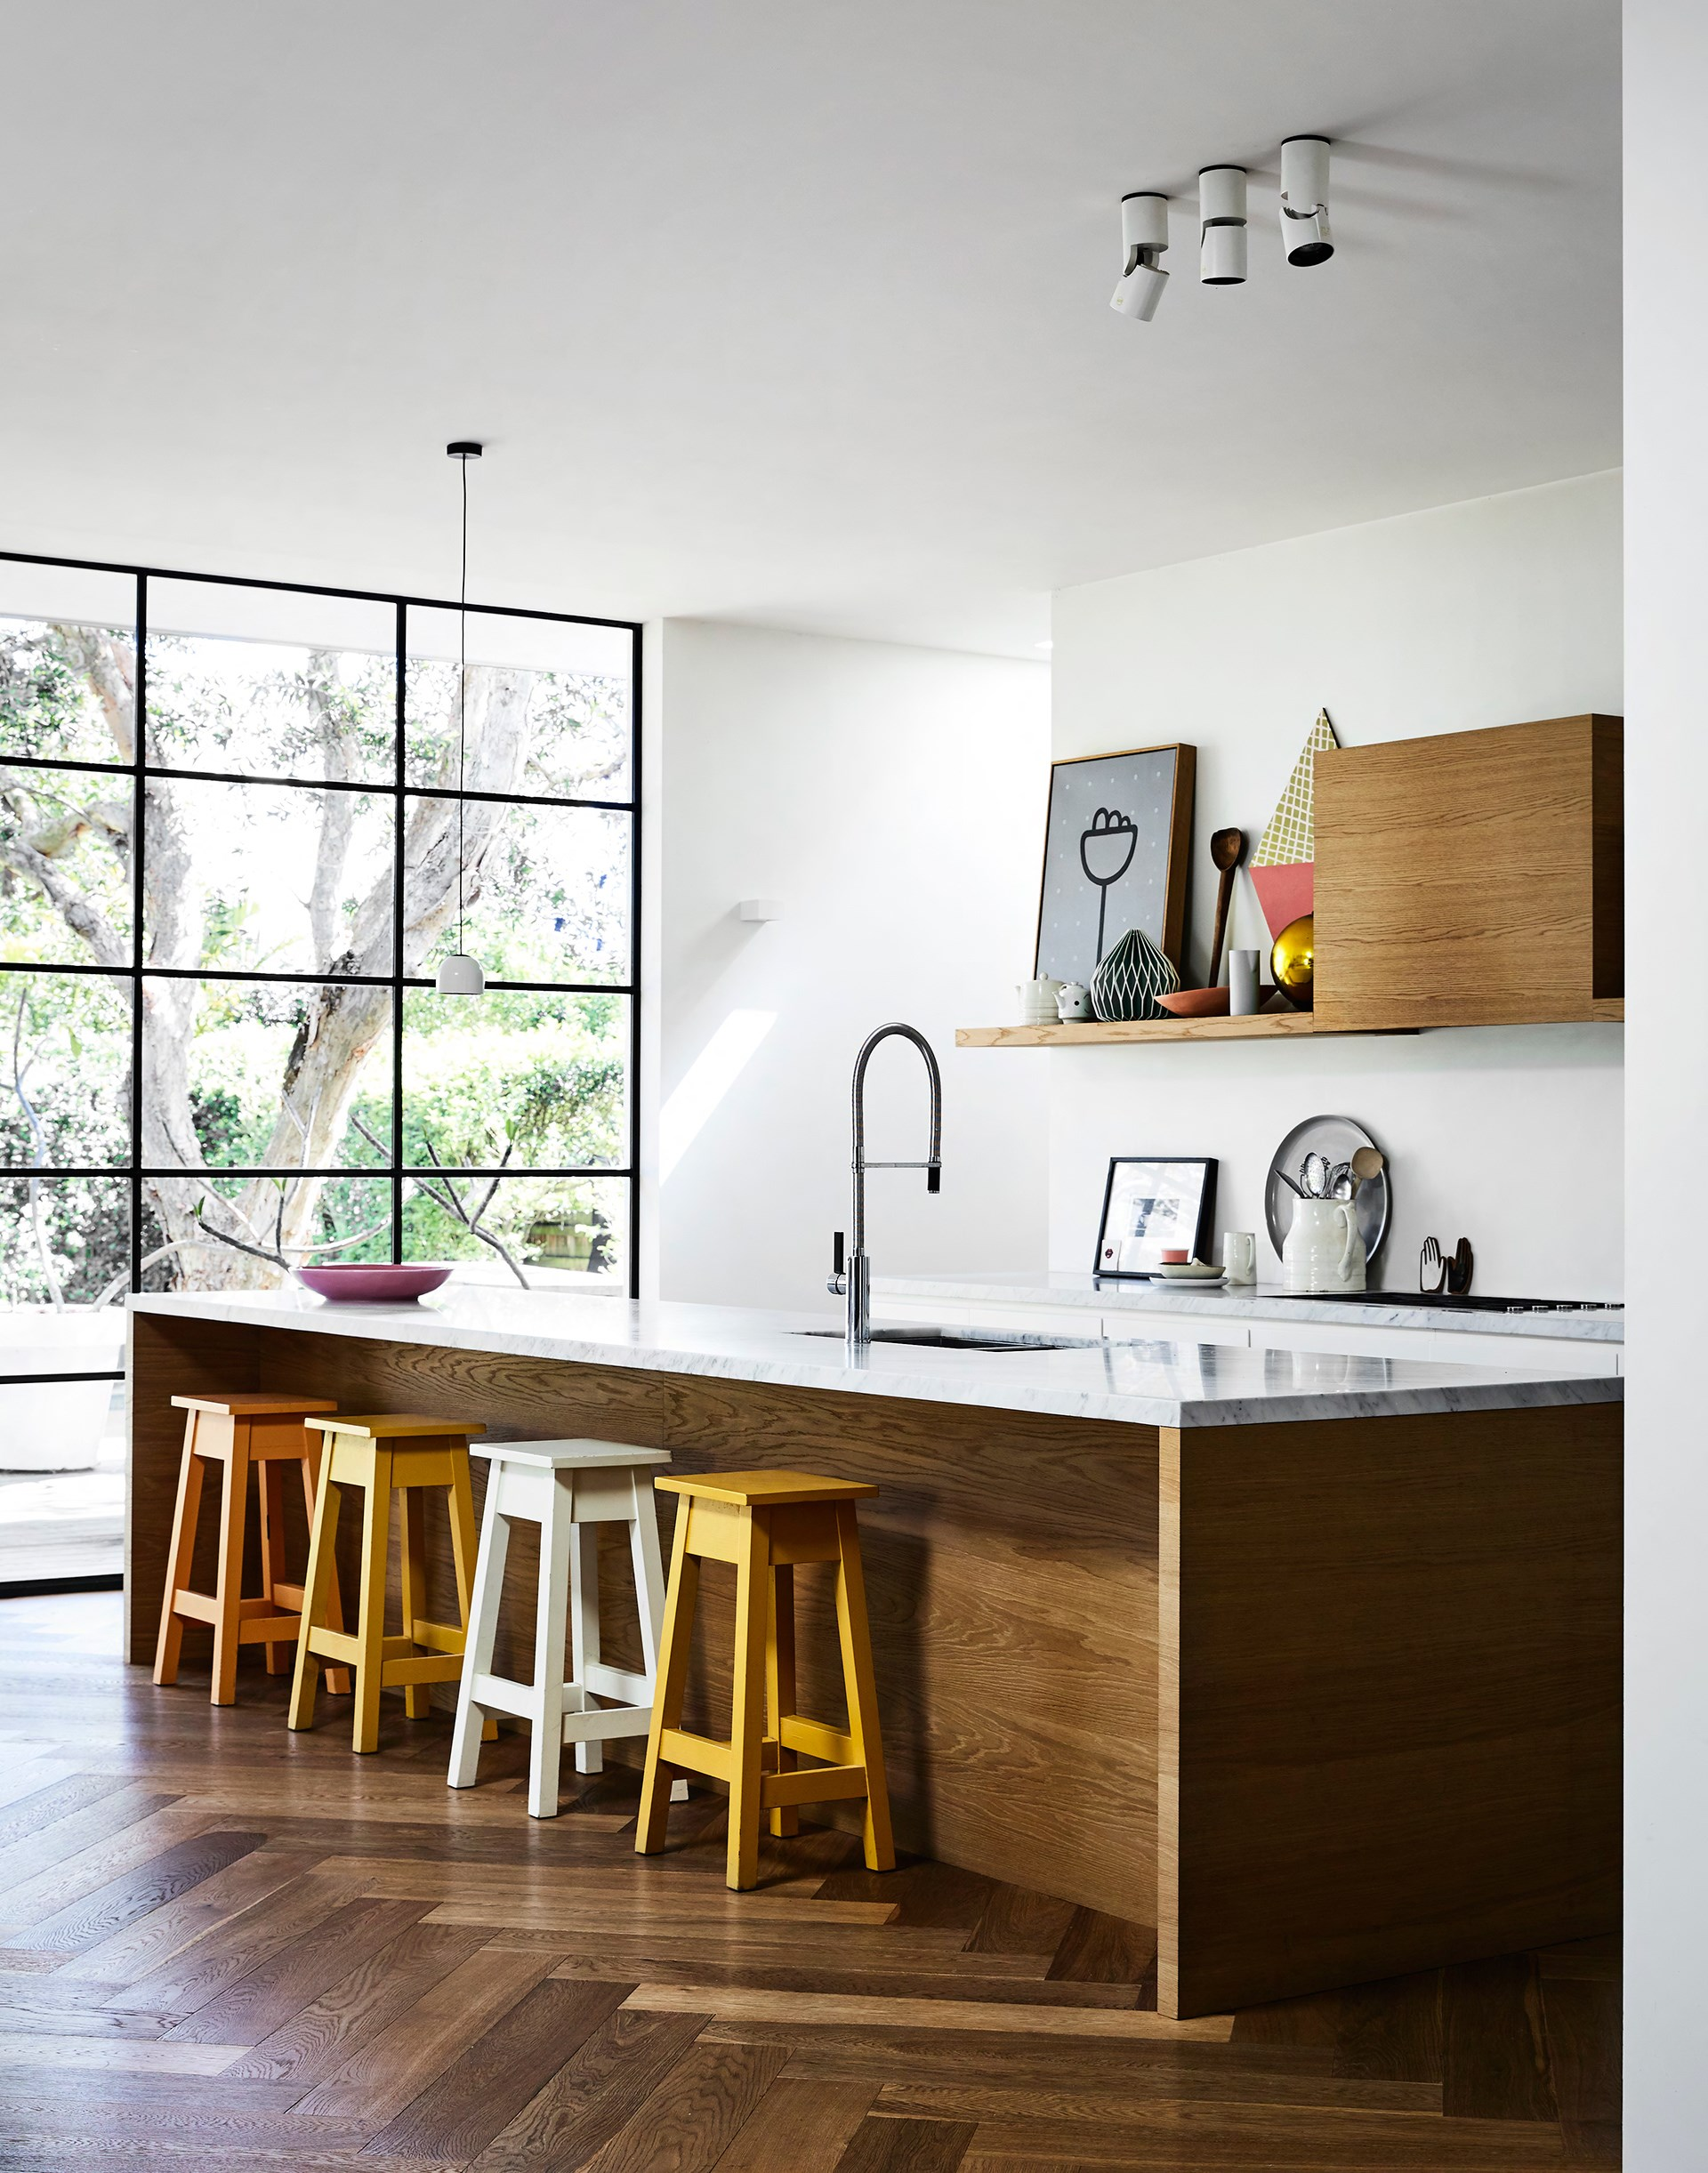 """The kitchen island and shelving are in a timber veneer by [George Fethers & Co.](http://gfethers.com.au/) """"Tina, our interior designer, spent a long while sourcing a match for the floors,"""" Rachel says. The benchtop is Carrara marble from [SNB Stone](http://www.snb-stone.com/). Four stools from [Mark Tuckey](http://www.marktuckey.com.au/) add subtle earthy tones."""